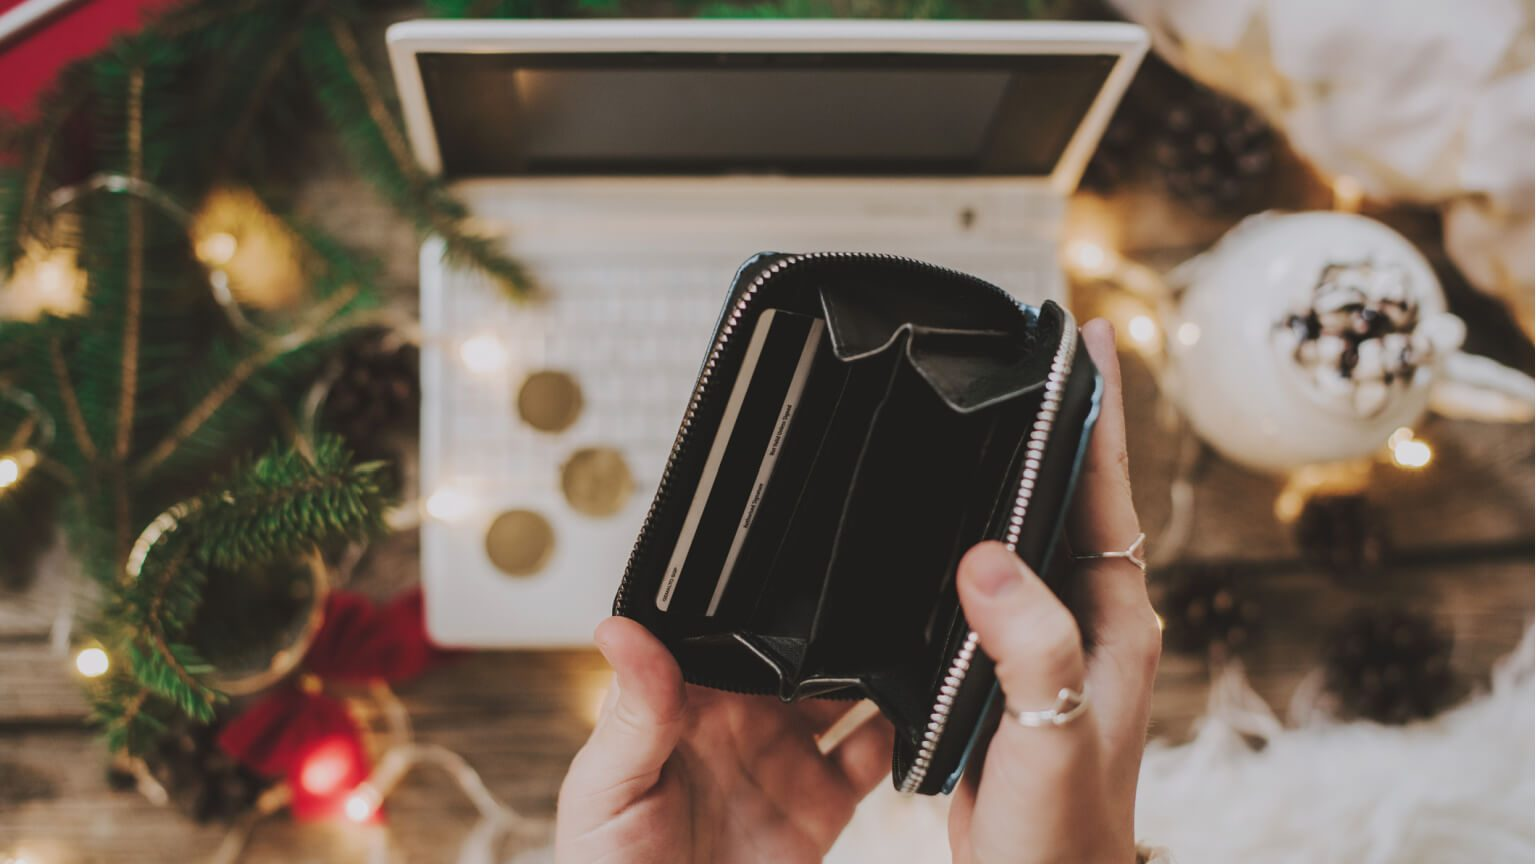 person holding an empty wallet over a white laptop in a Christmas setting